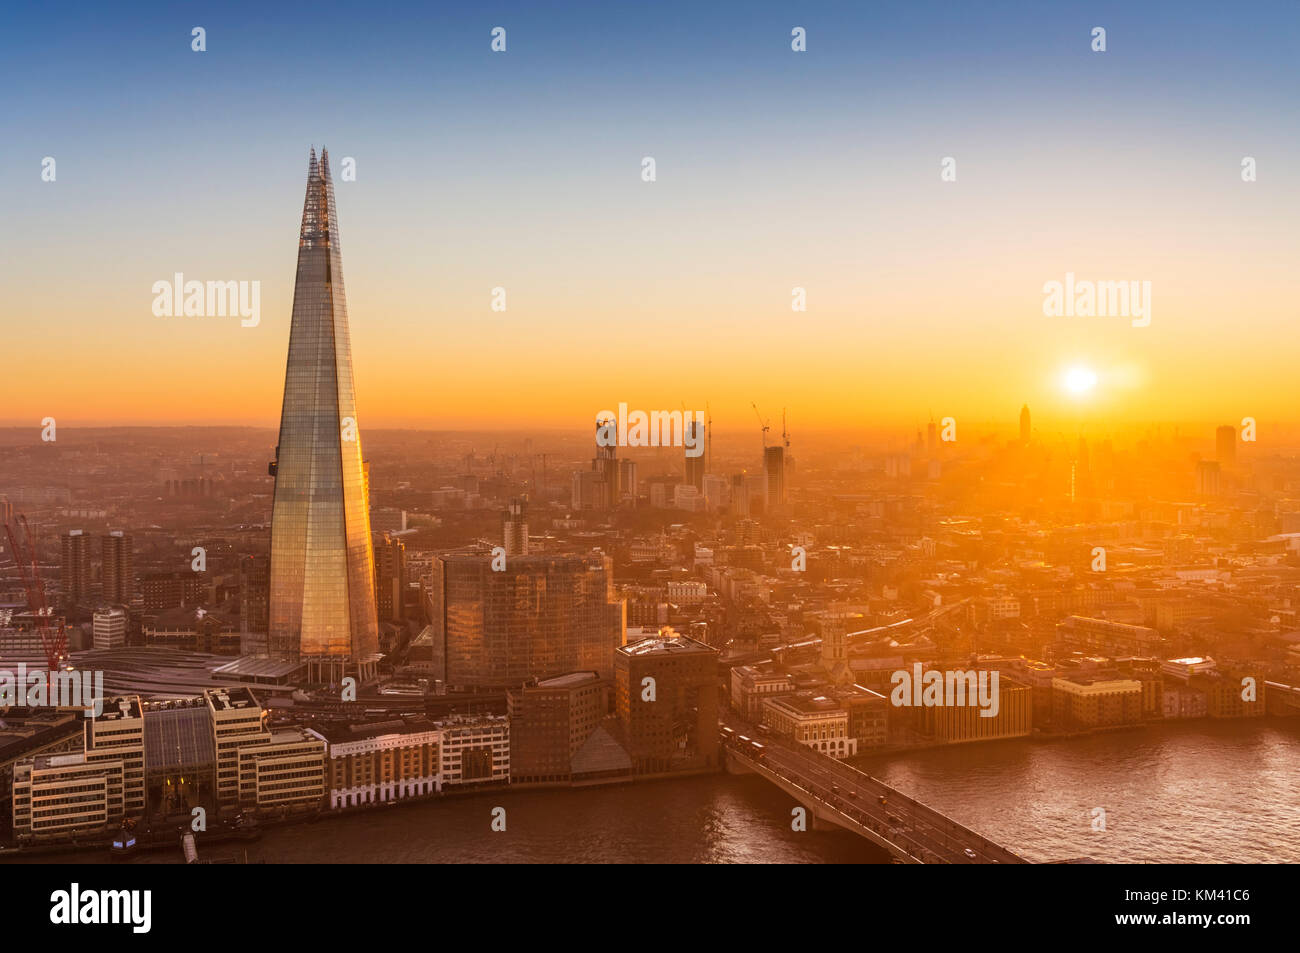 Der Shard London England London Uk gb eu Europa der Shard London London England UK gb eu Europa Stockbild